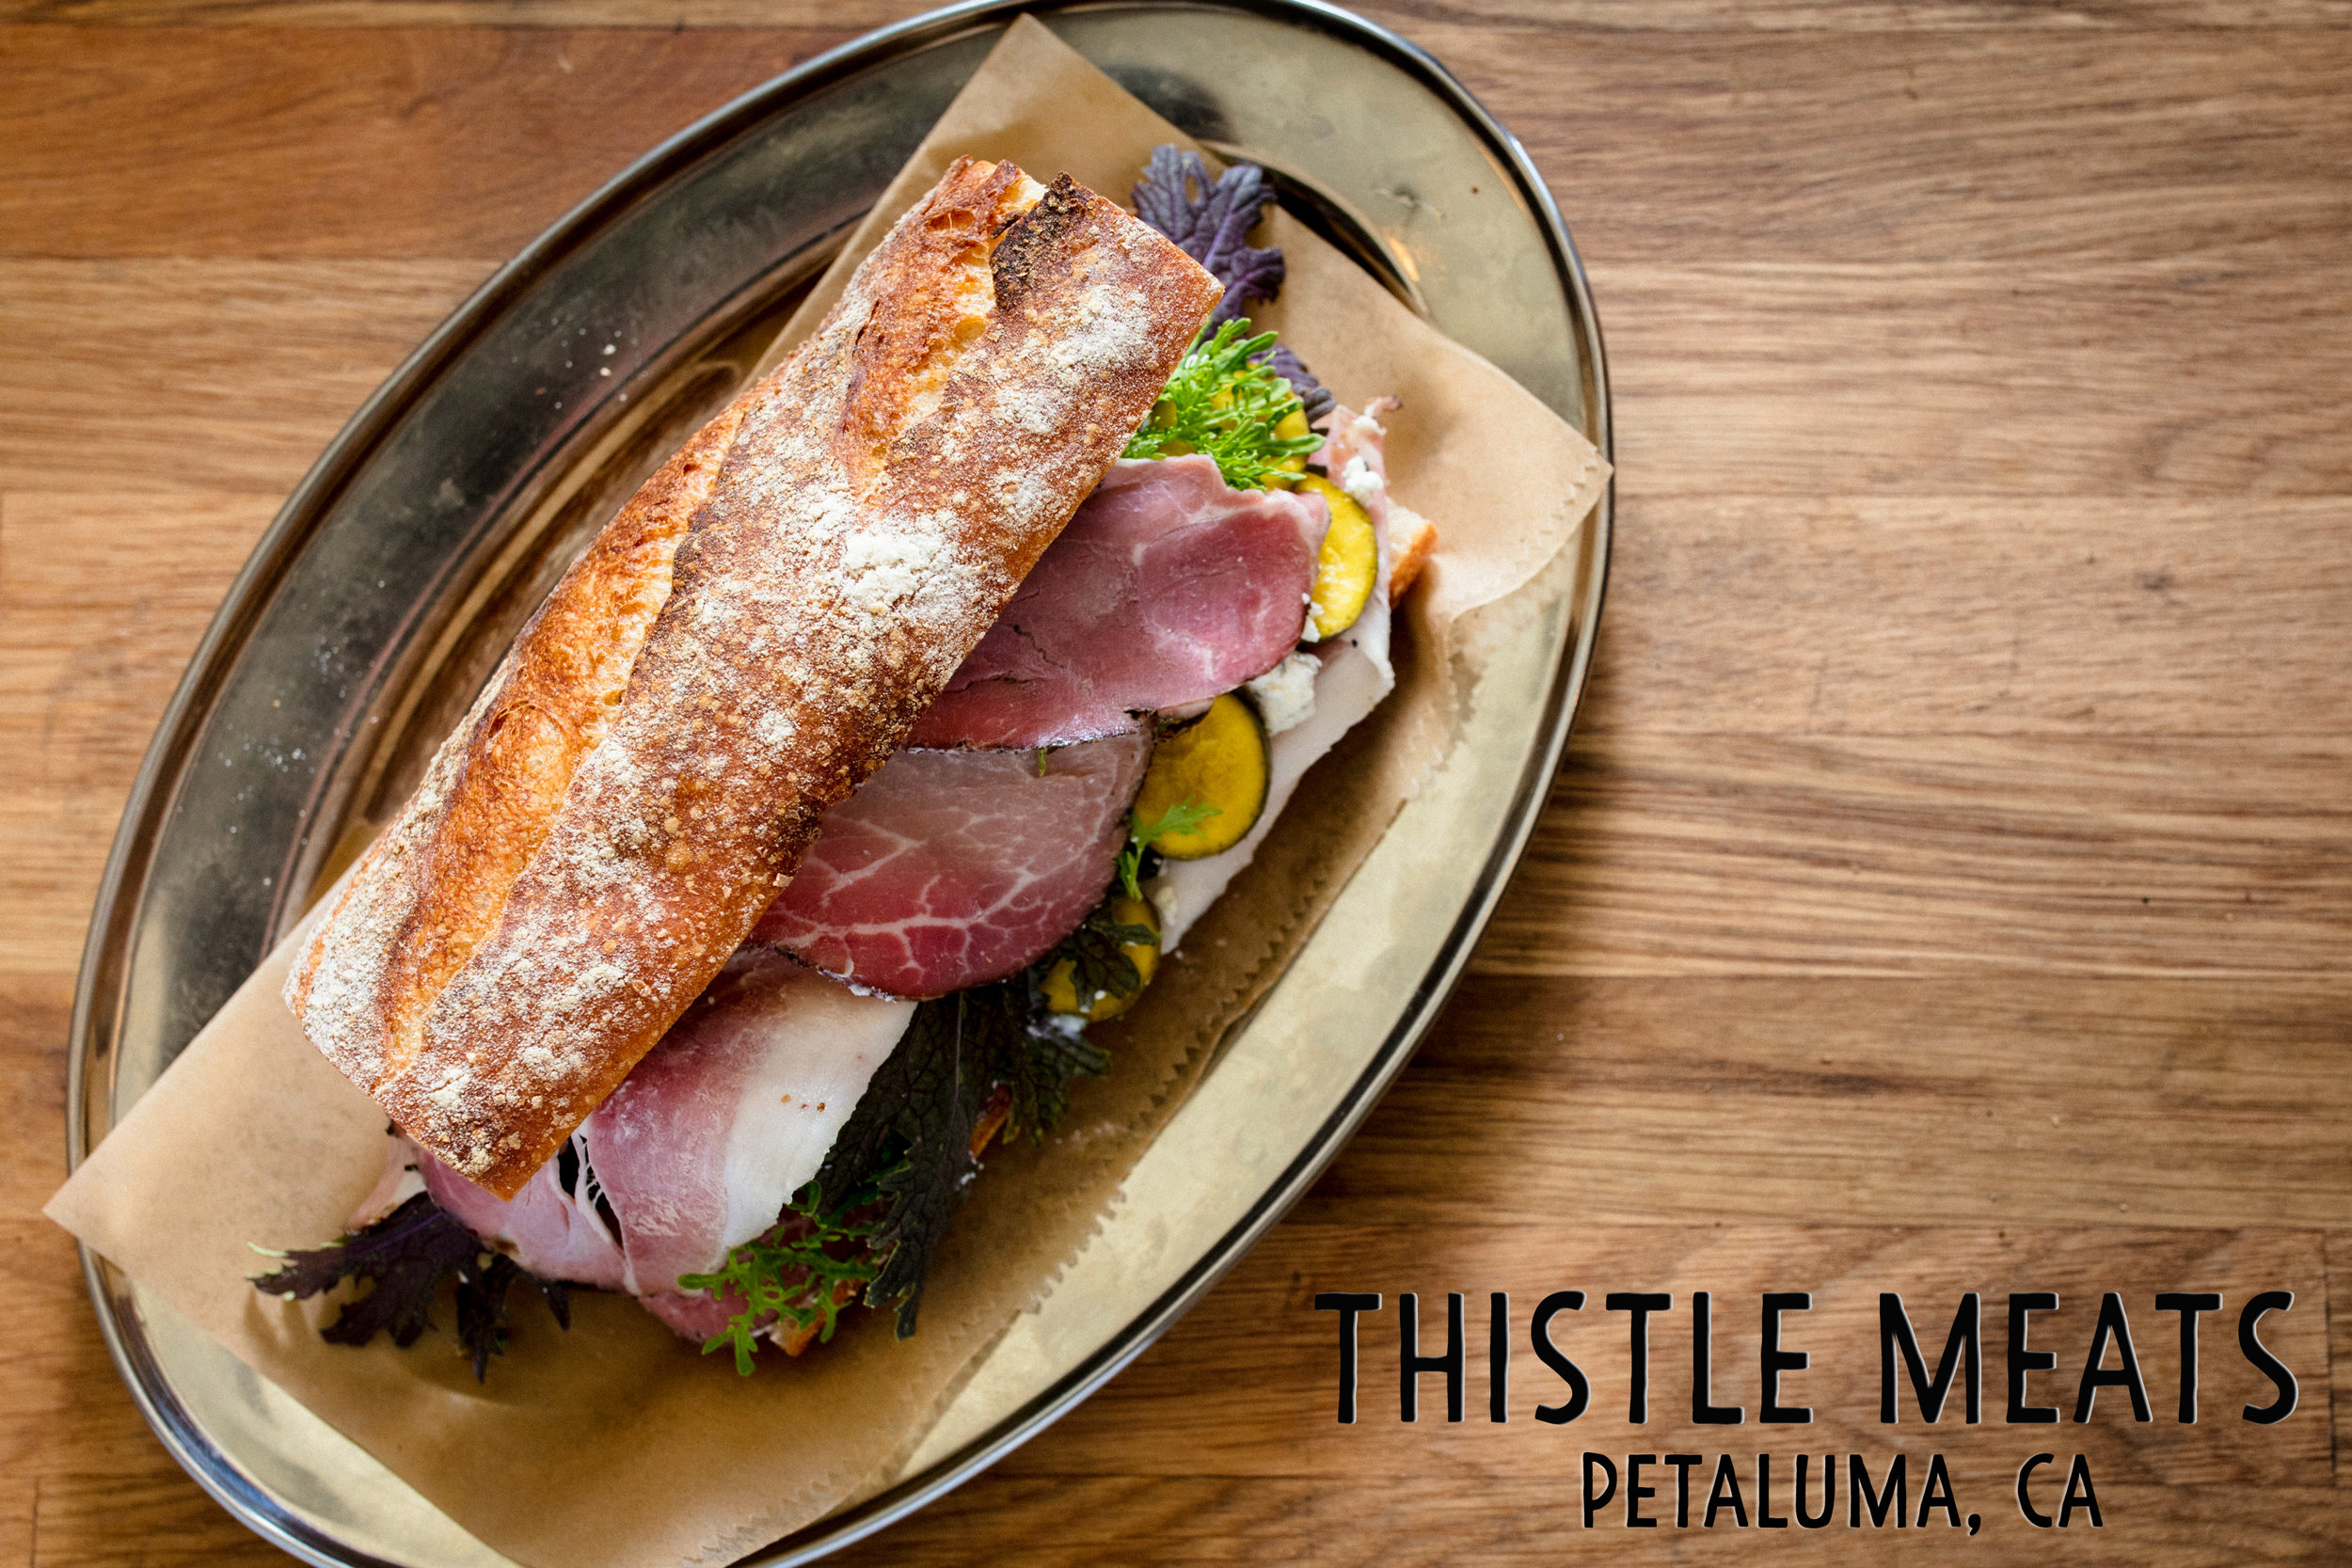 thistle_meats_2017_0883_text.jpg